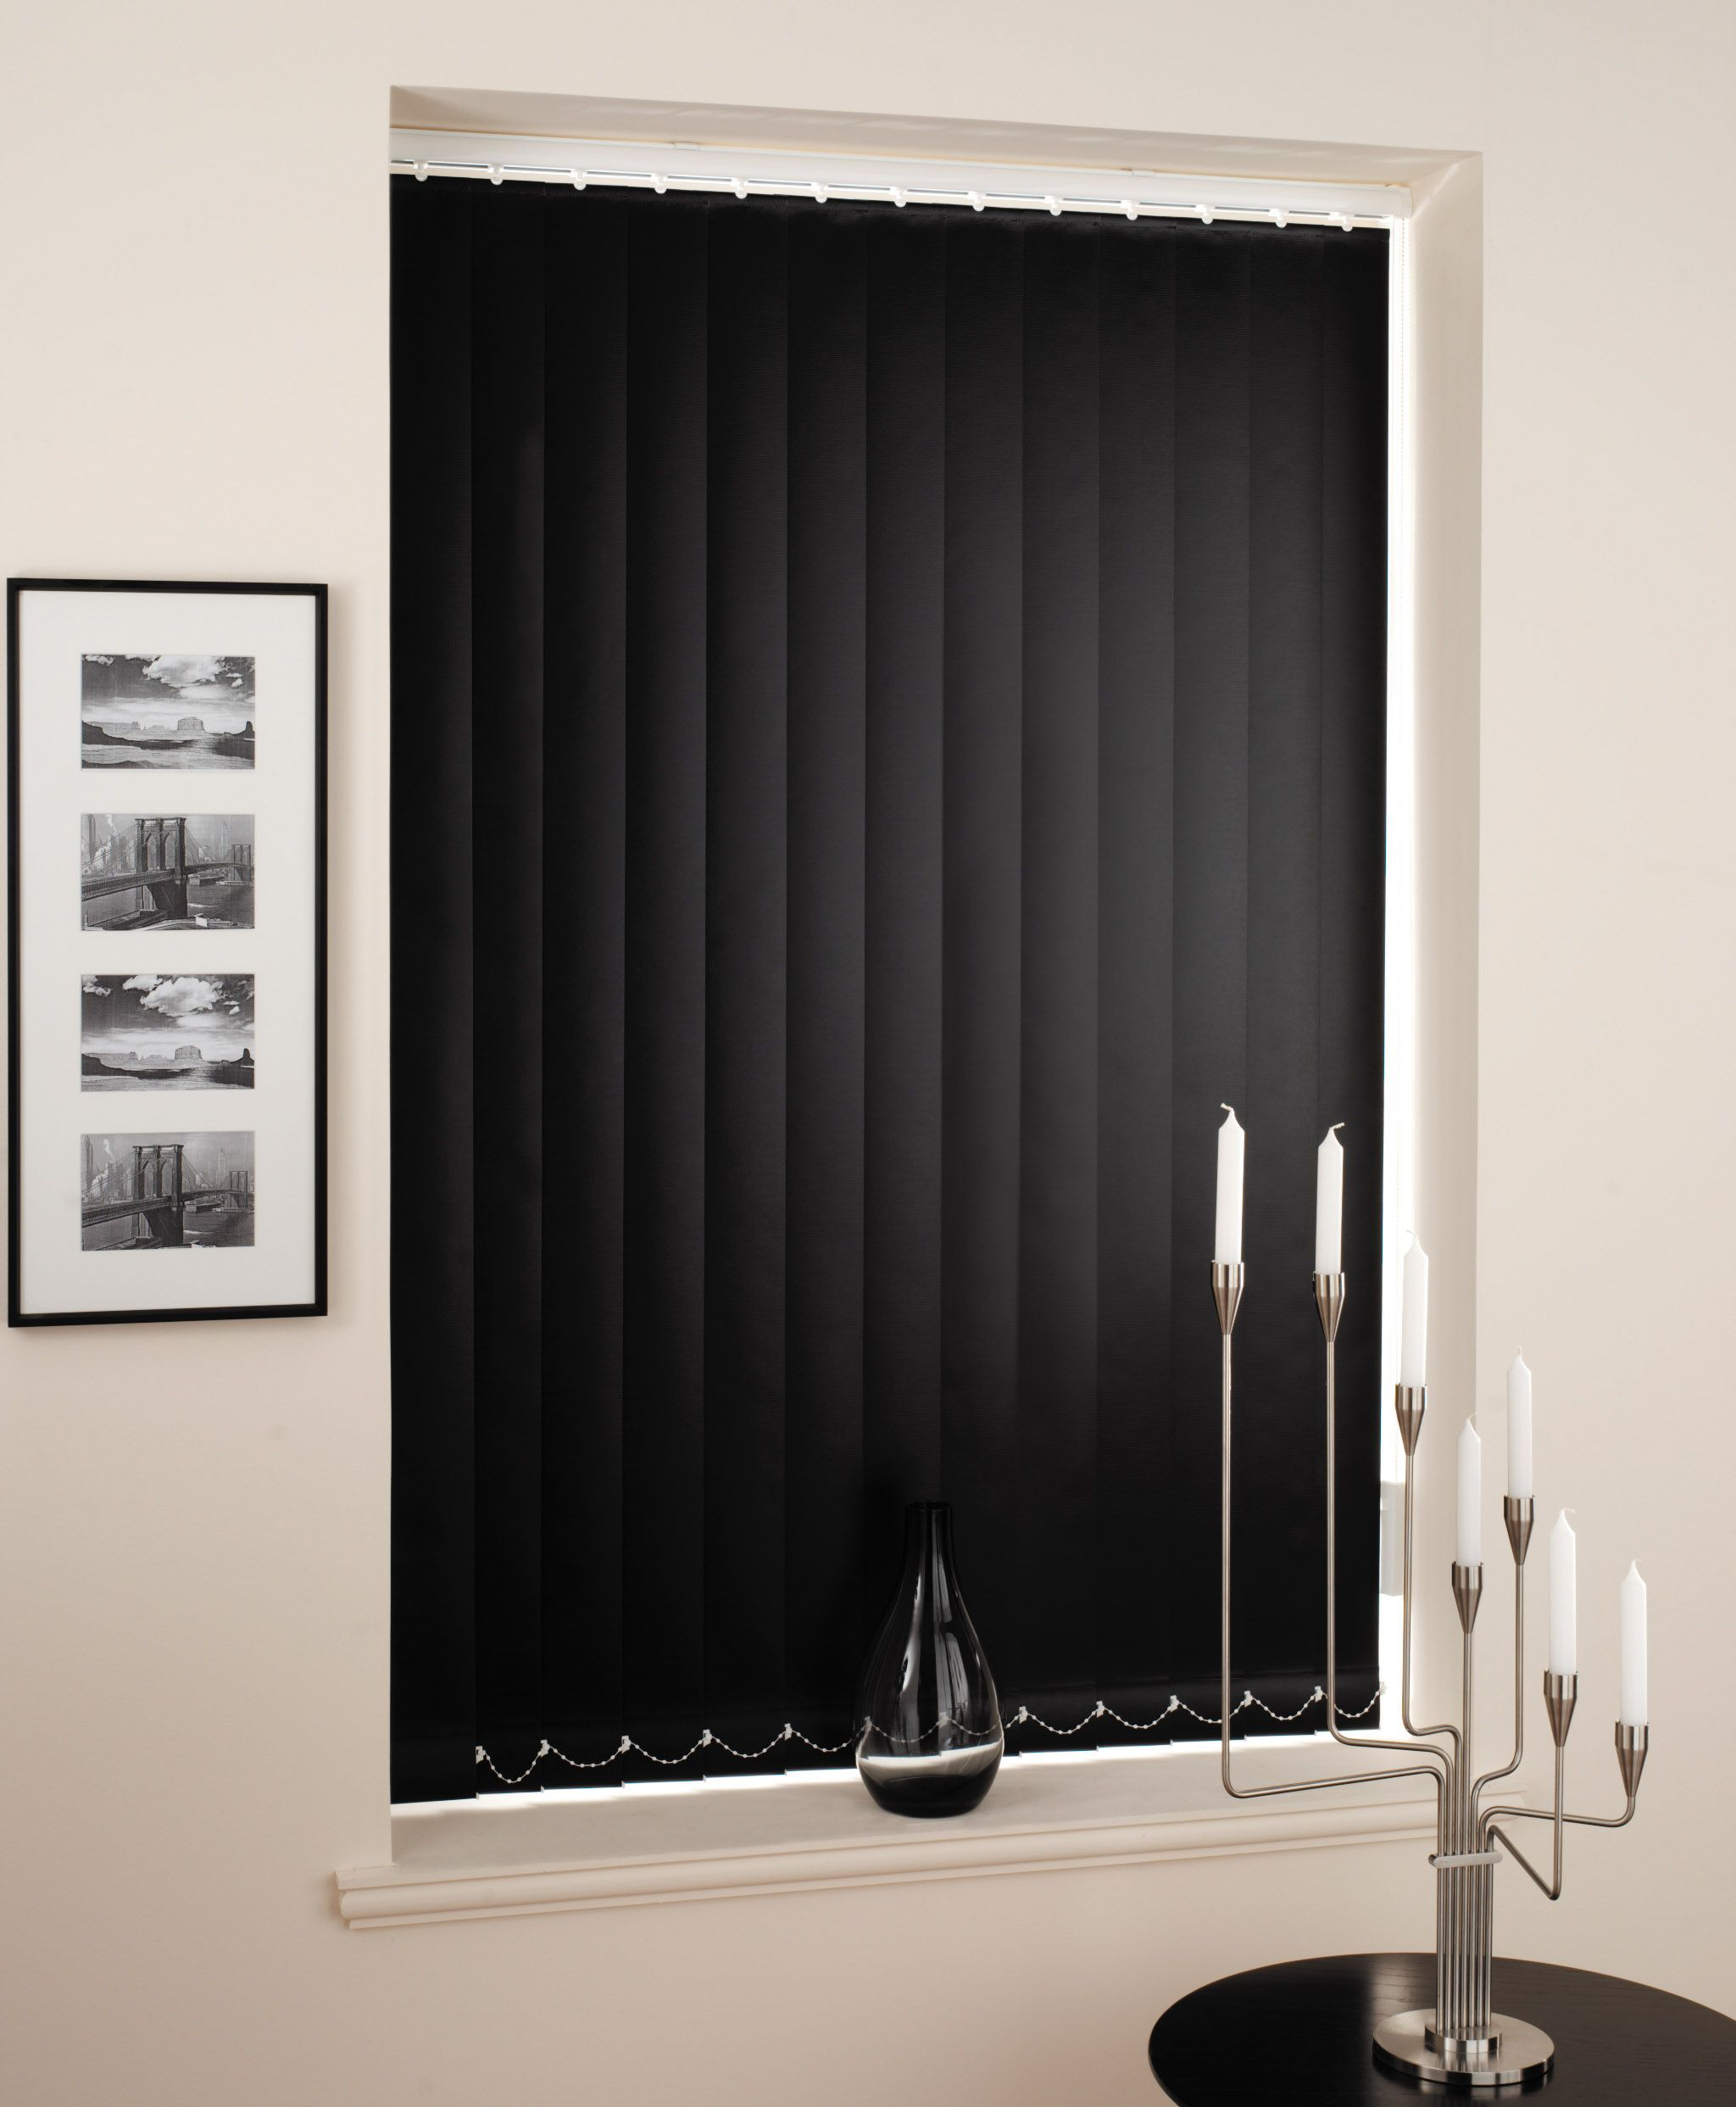 Fabric Vertical Blinds Versatile And Light Weight Madeinamerica Curtains With Blinds Blackout Blinds Vertical Blinds Curtains